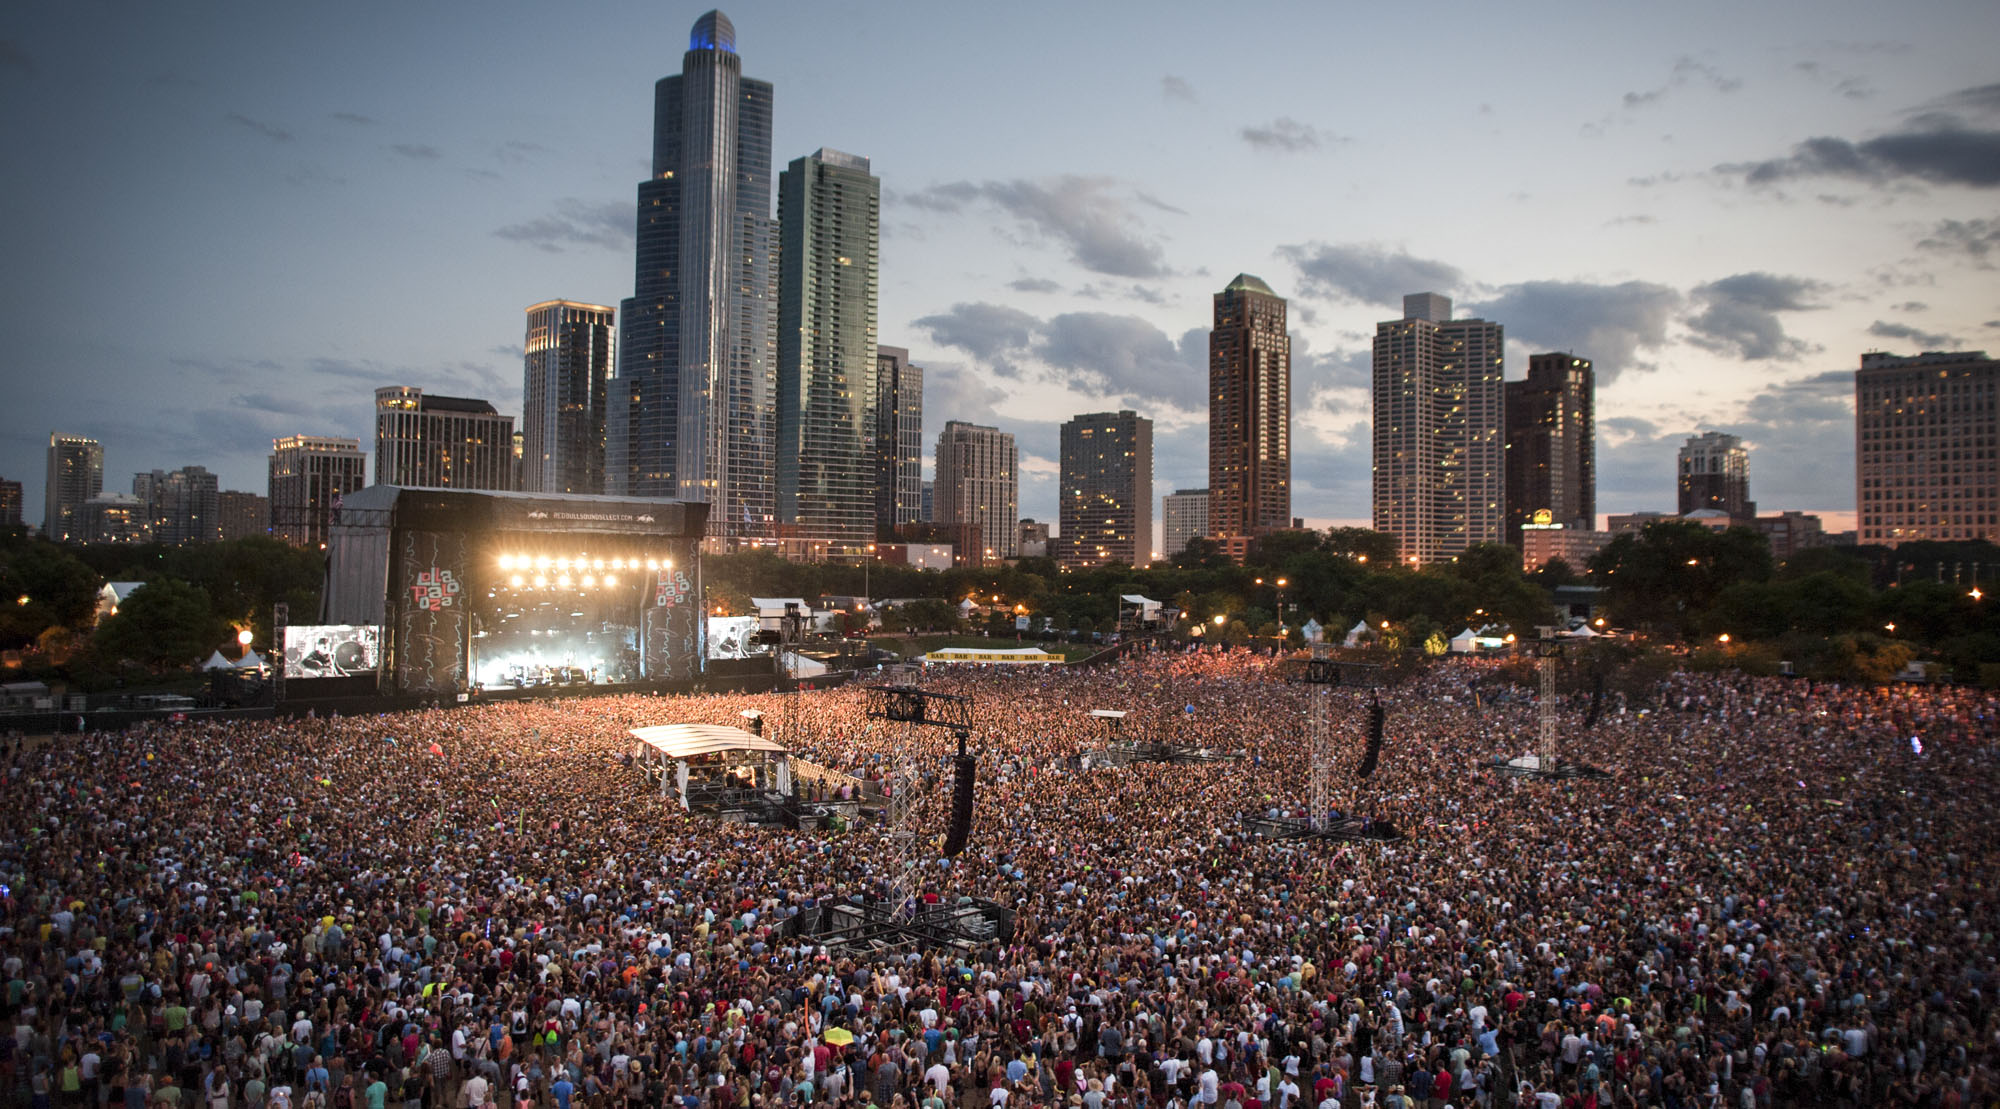 Lollapalooza 2018 Seeks Redemption With Stellar Lineup + 7 Acts Not To Miss